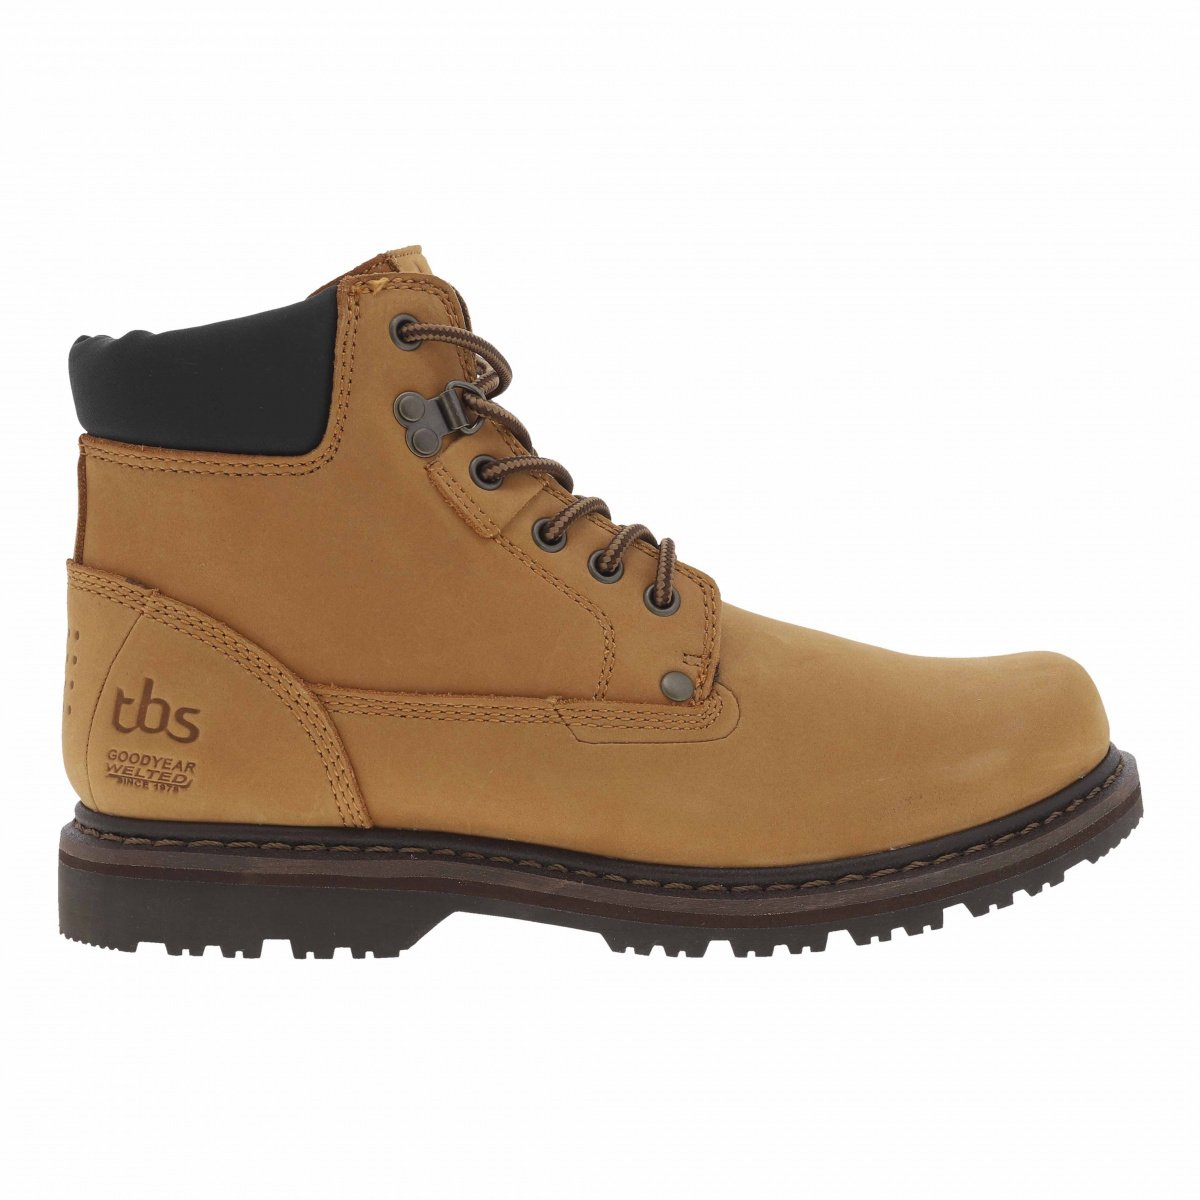 boots tbs homme